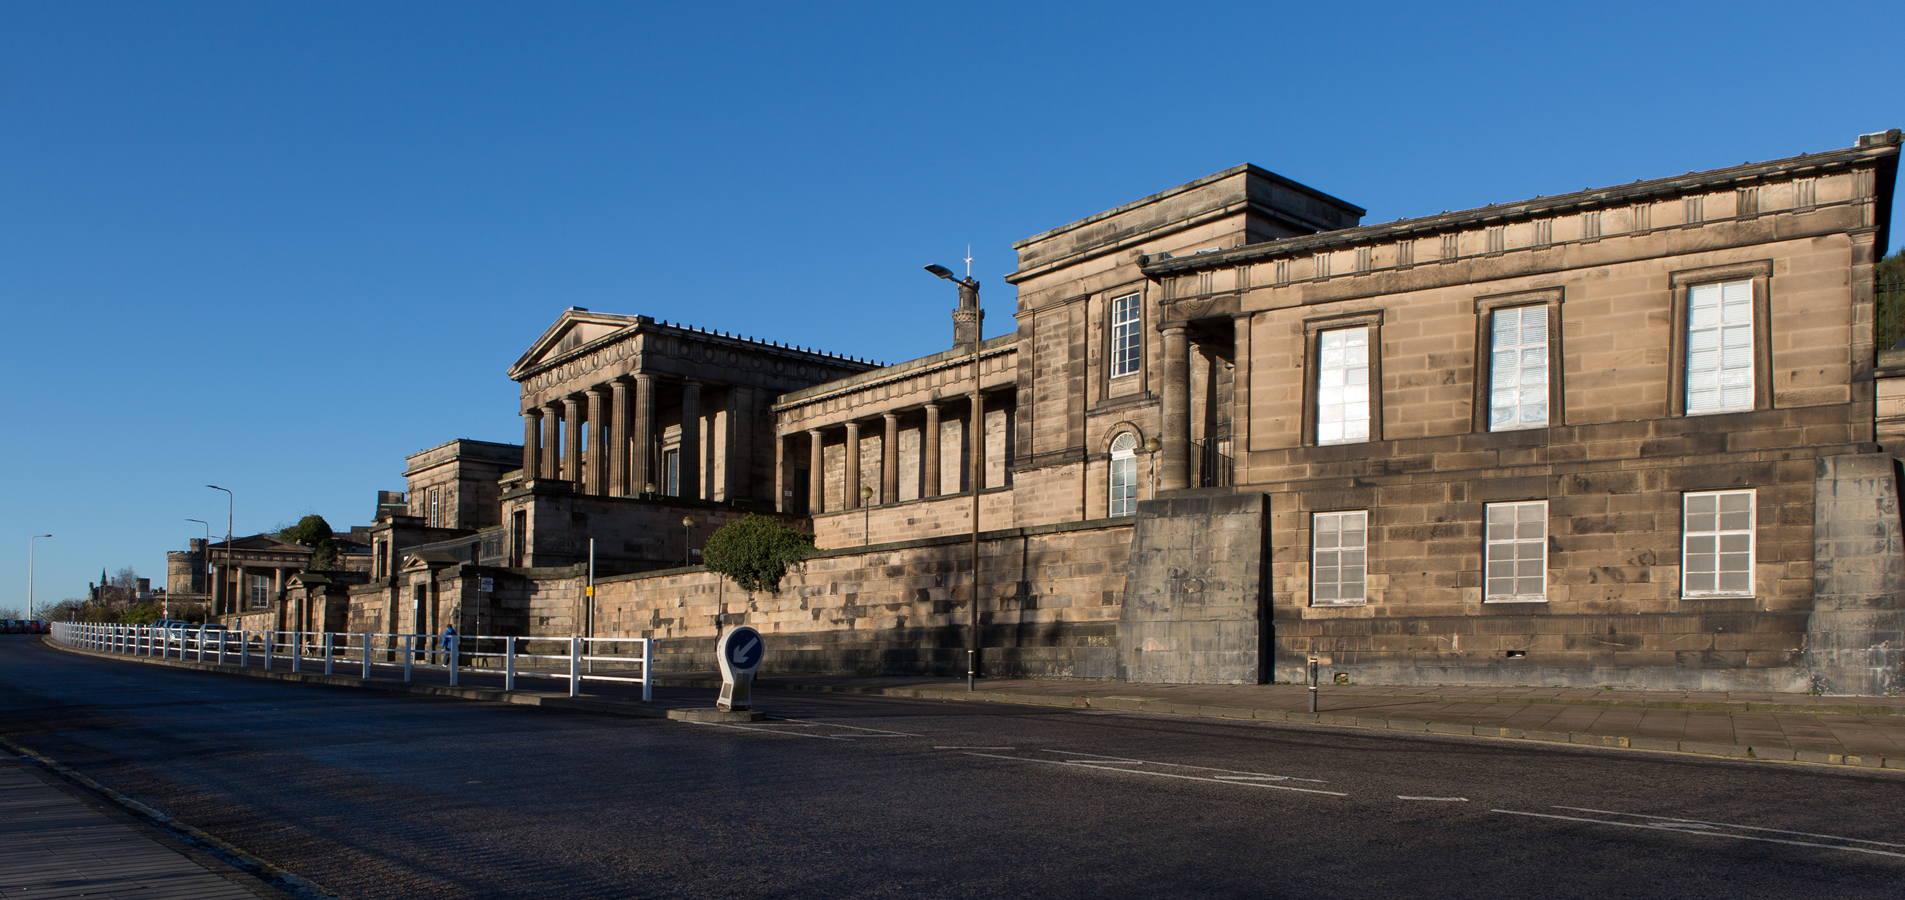 Proposals To Transform Old Royal High School Into World-Class Hotel Announced